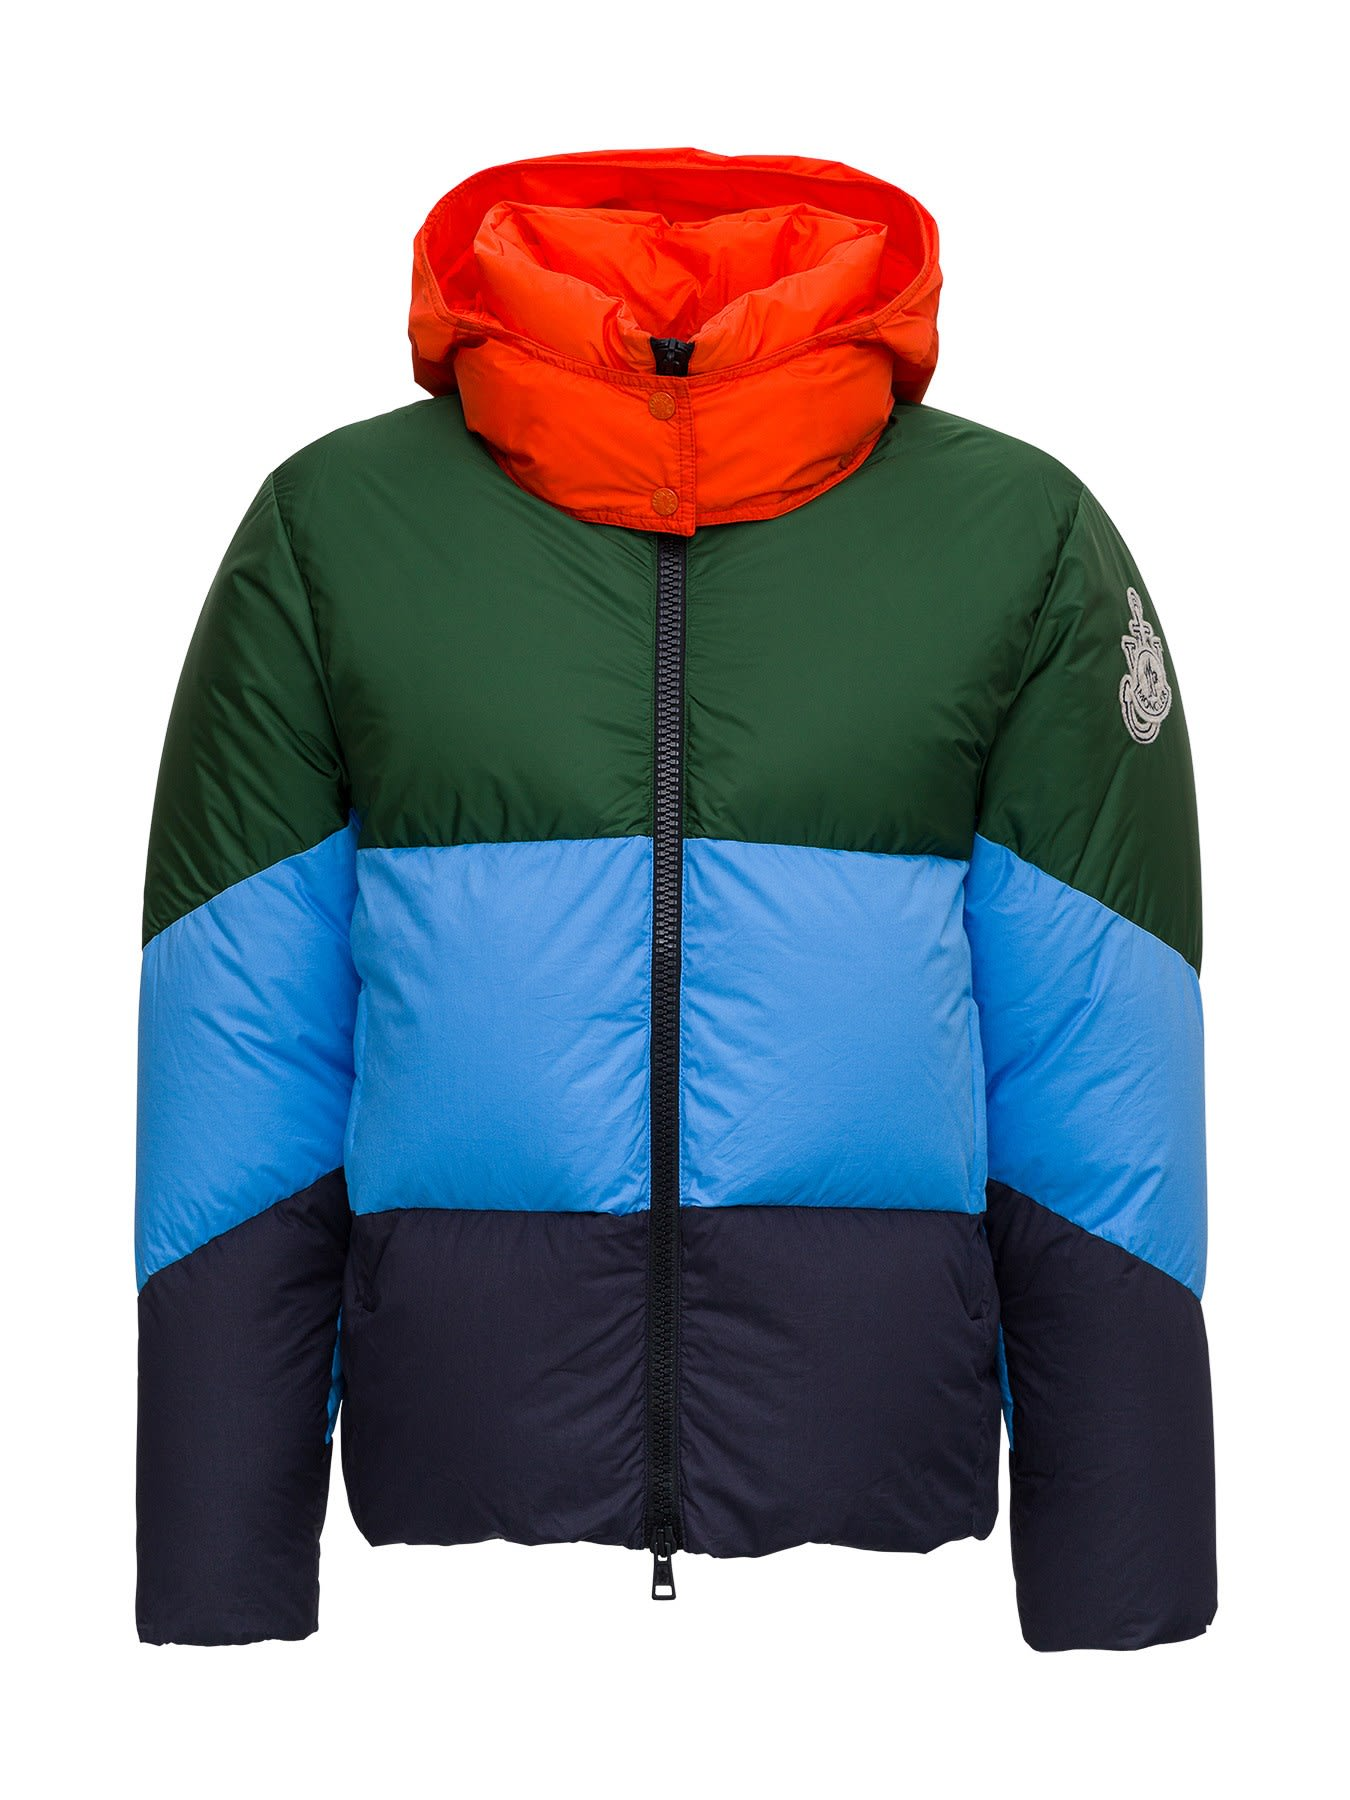 Moncler Genius Downs BICKLING DOWN JACKET BY JW ANDERSON